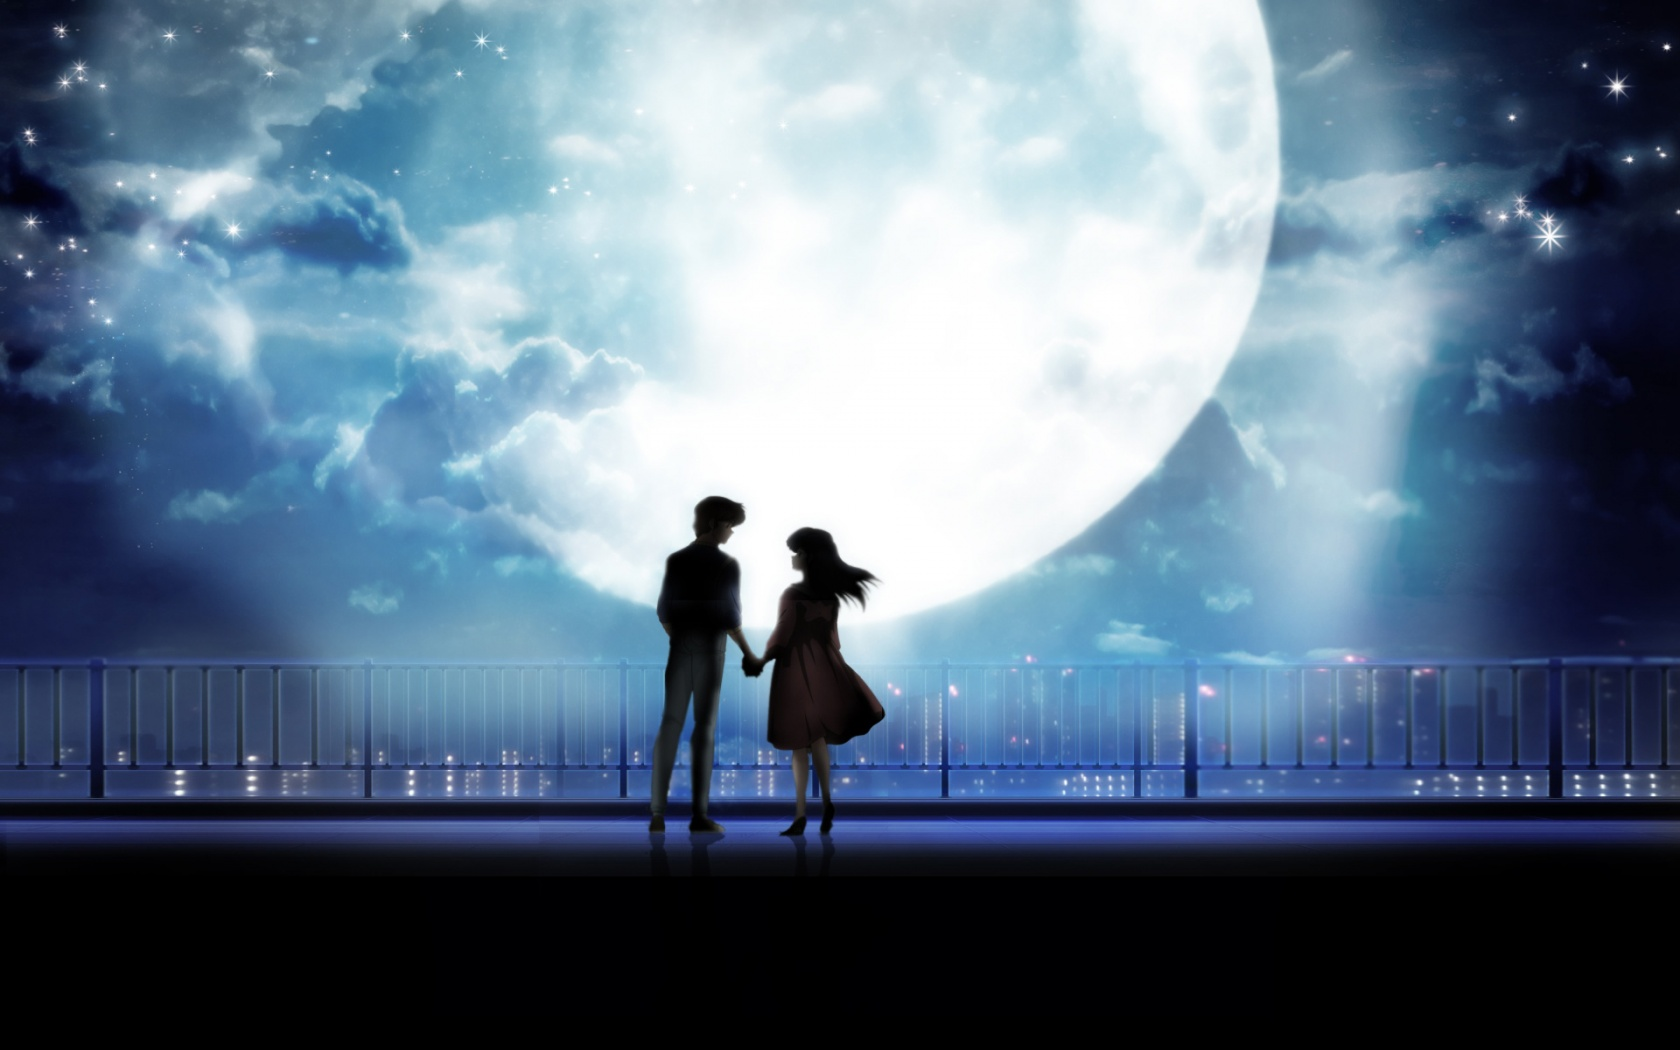 Anime art anime couple holding hands moonlight desktopjpg 1680x1050